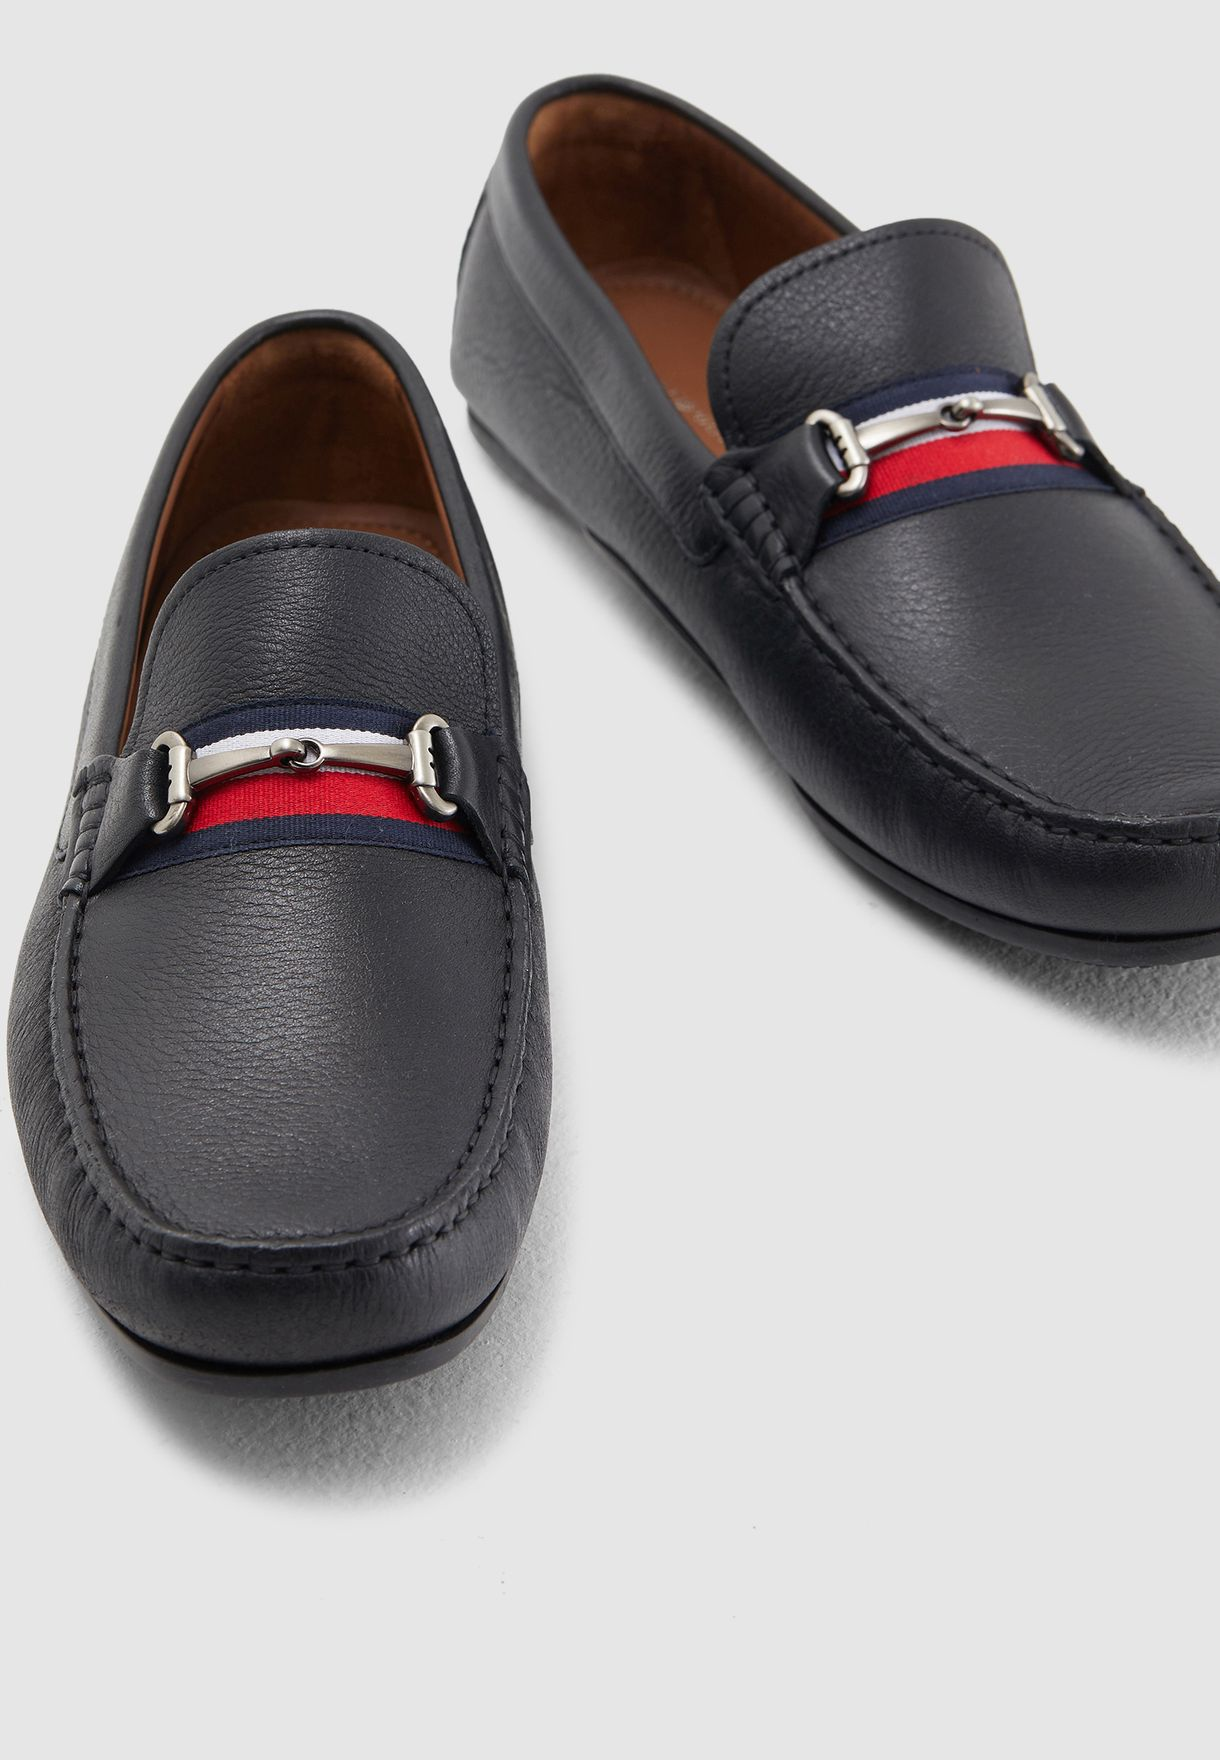 ff96e42351a9 Shop Tommy Hilfiger black Fringe Driver Loafers FM0FM02007990 for ...